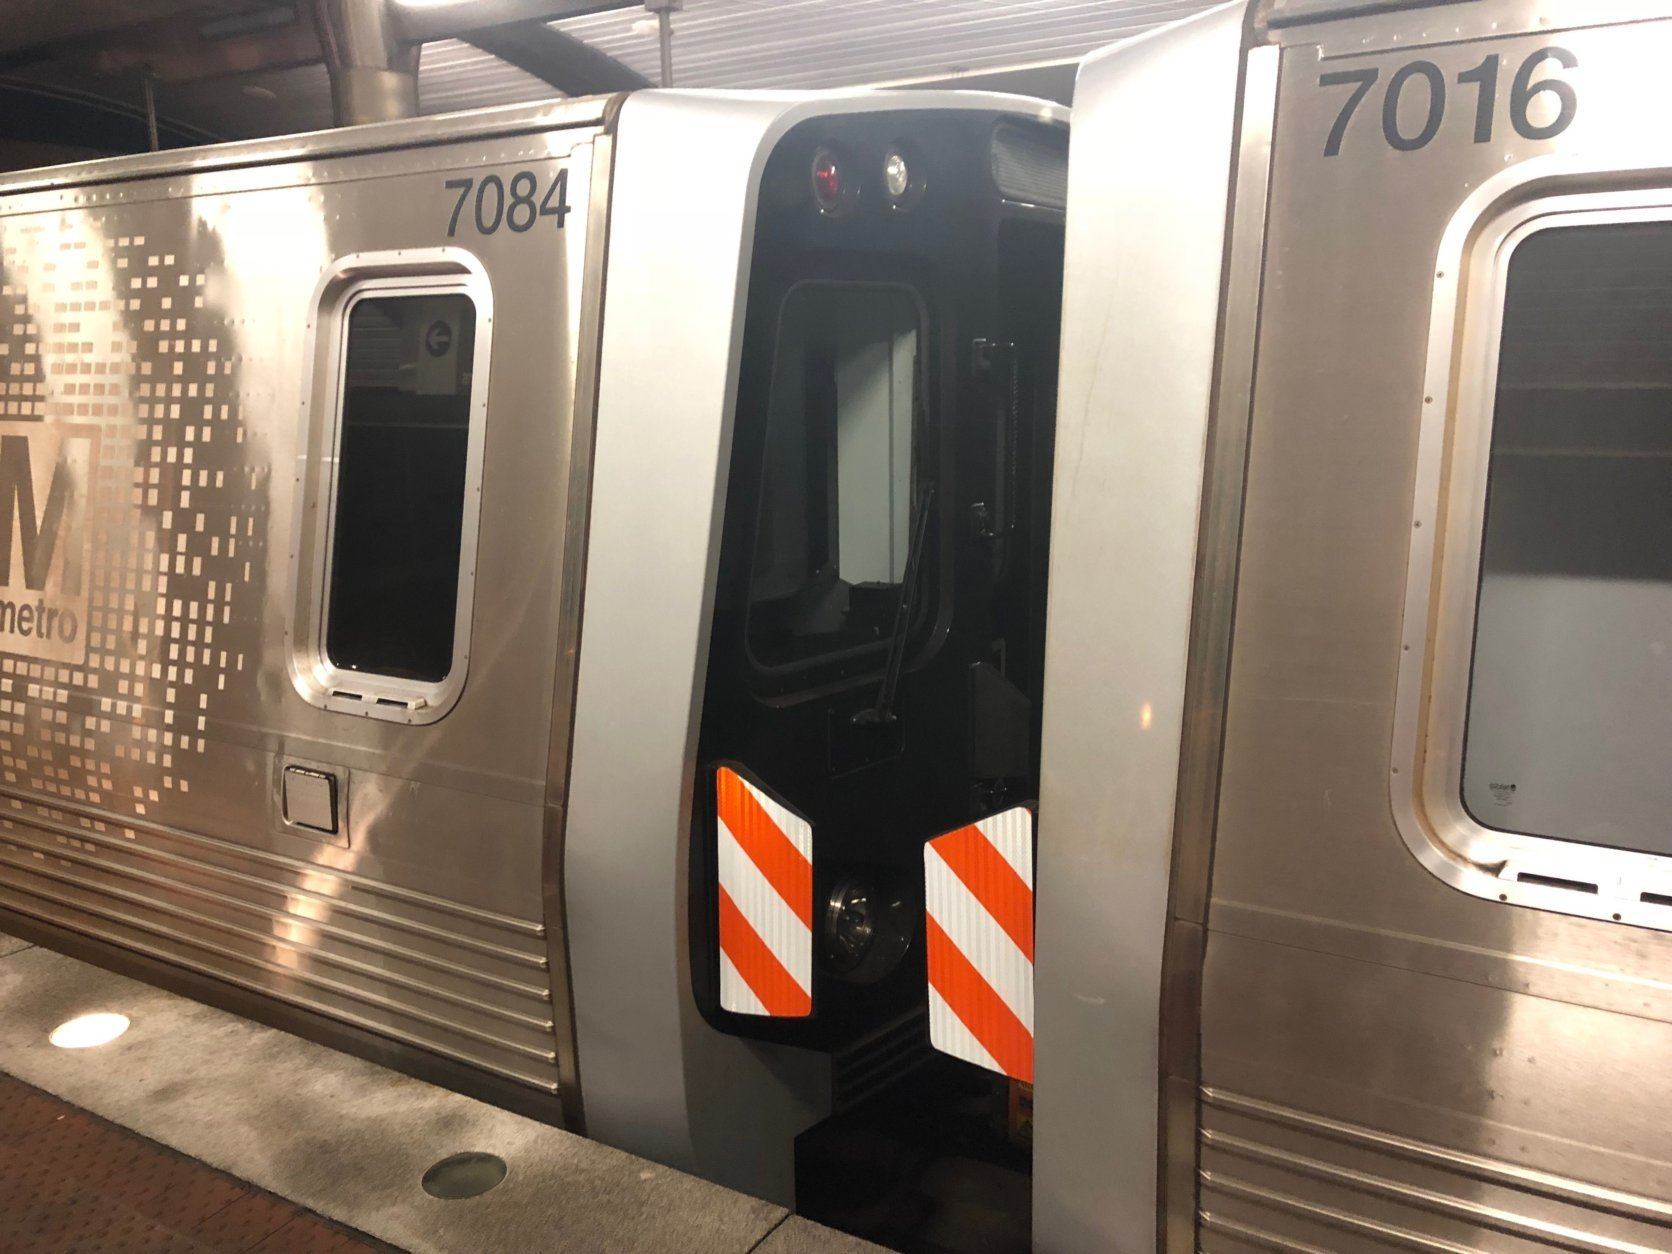 The latest temporary safety improvement is new high-visibility orange and white reflective tape that Metro expects to have on all rubber barriers between 7000 Series cars within a few weeks. (WTOP/Max Smith)